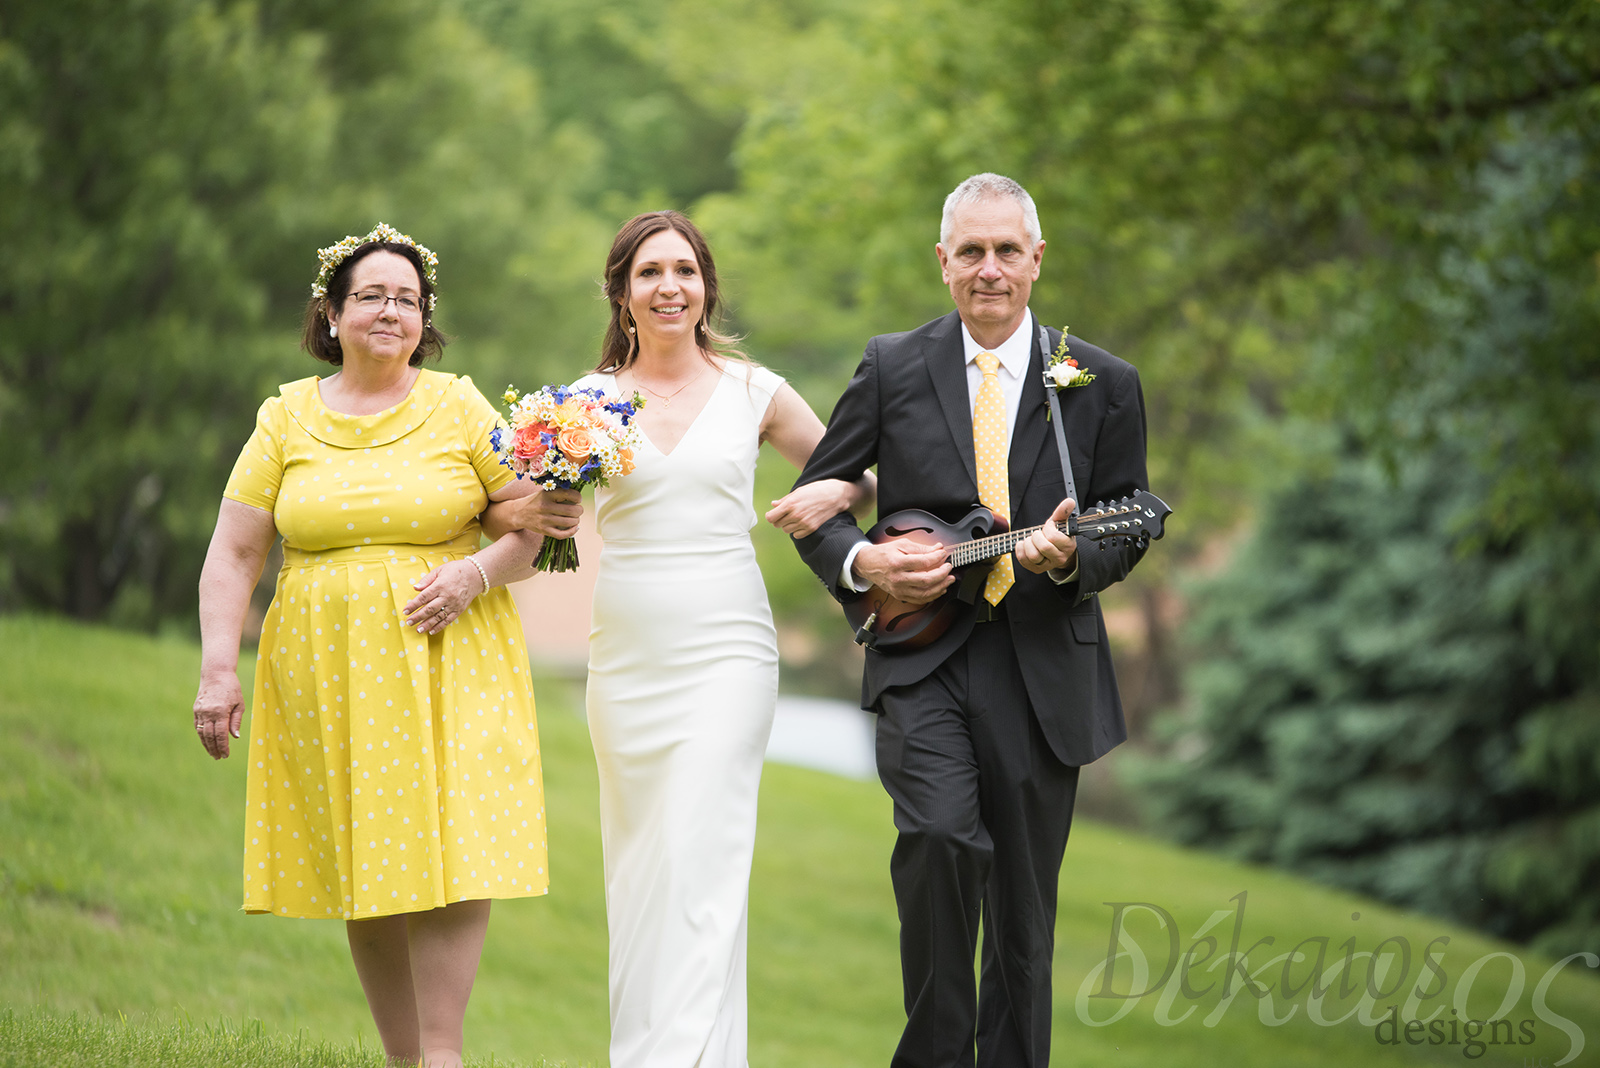 Dad played the mandolin as they walked up the isle.